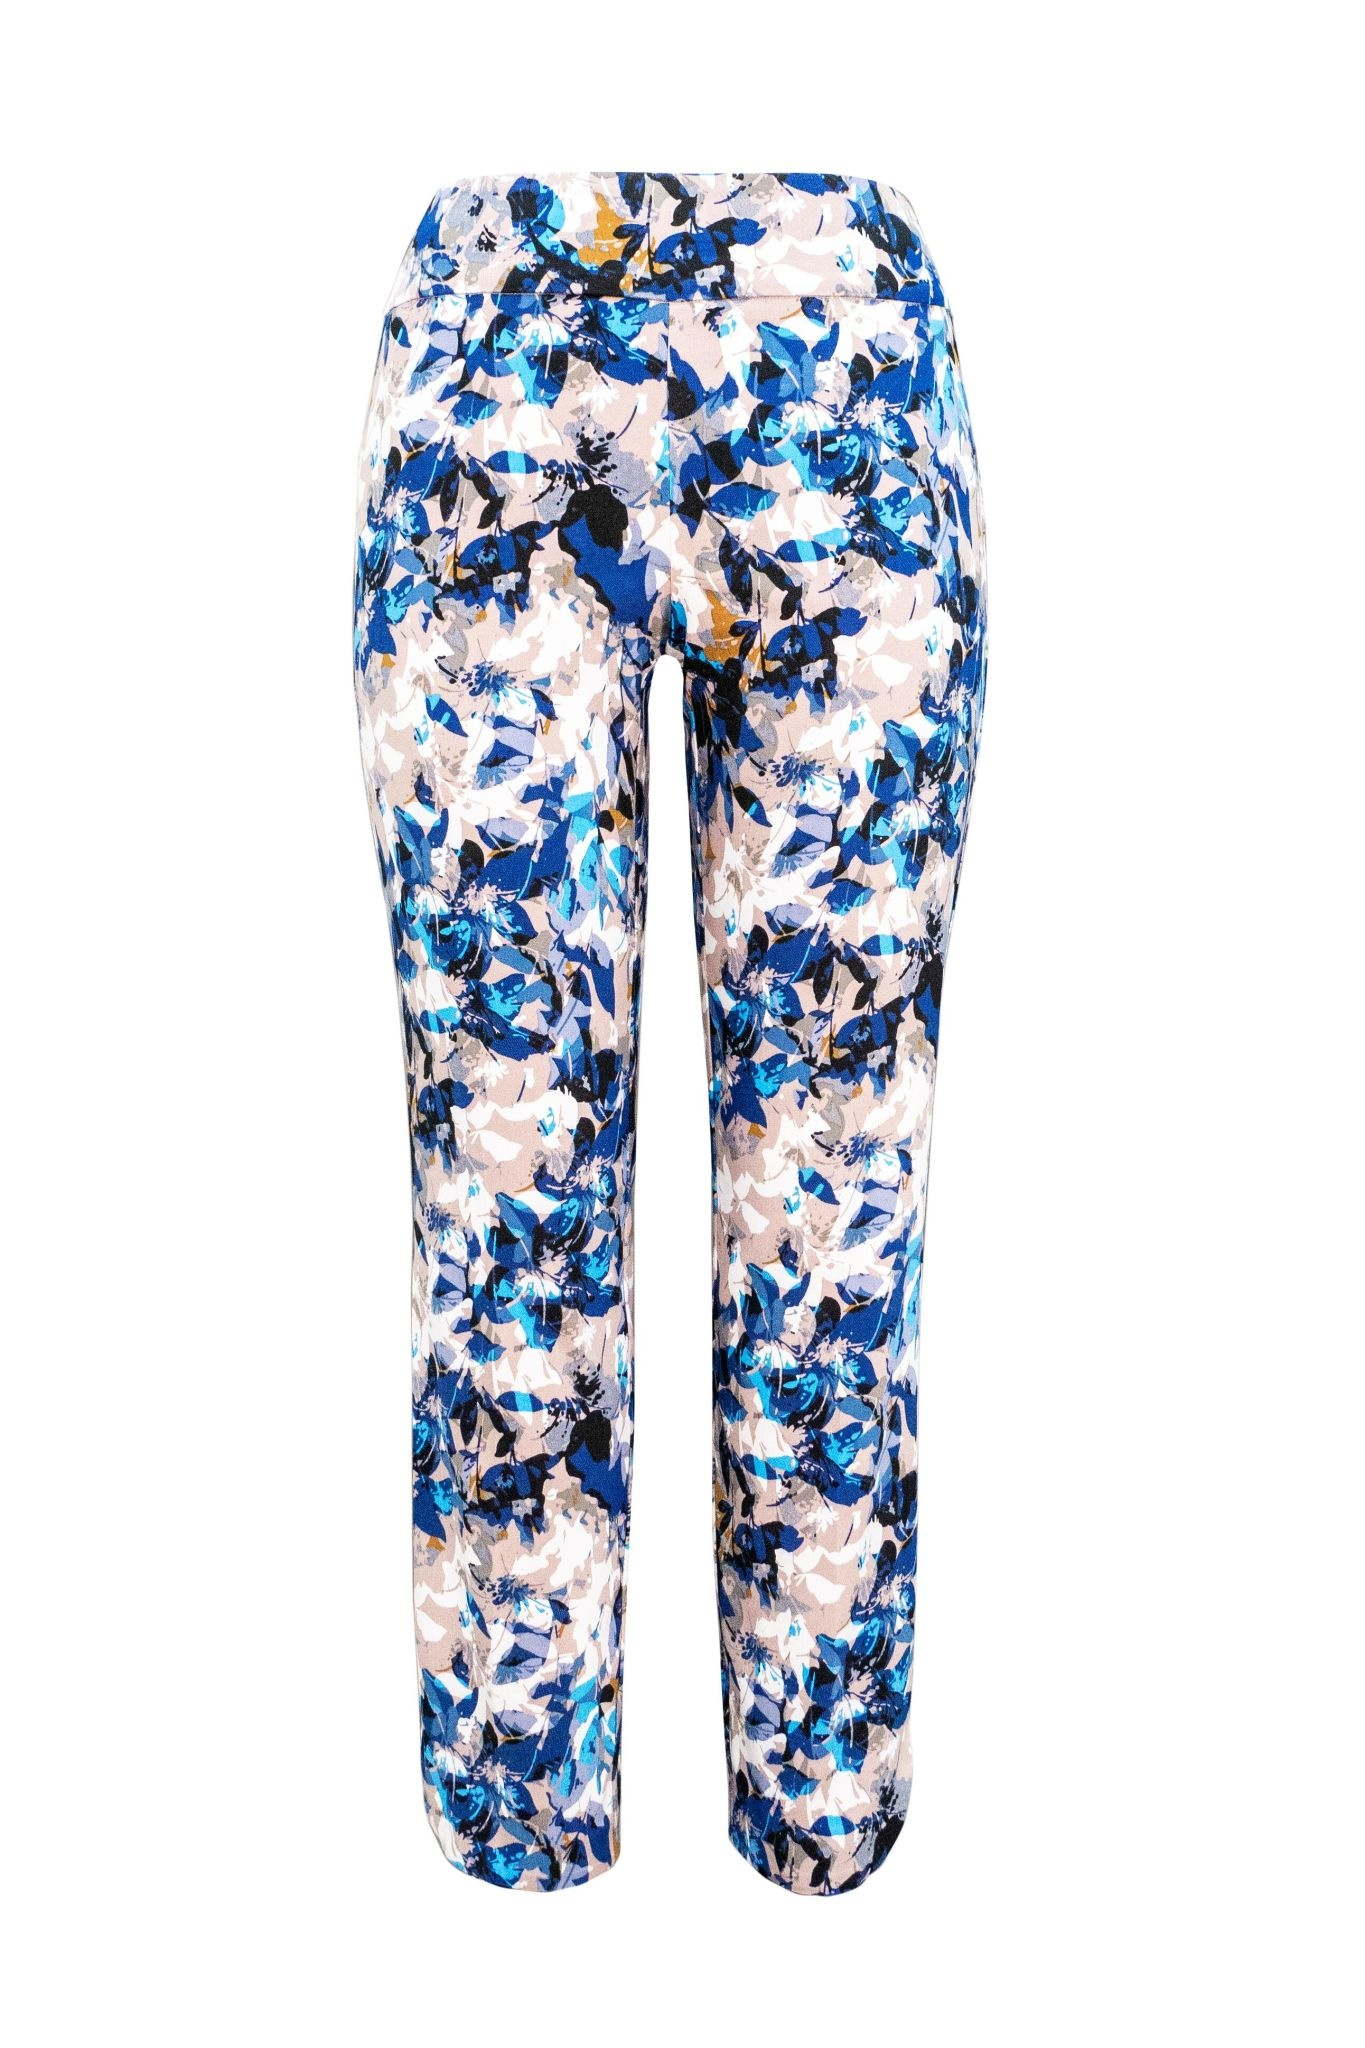 Up Ankle Pant Greece